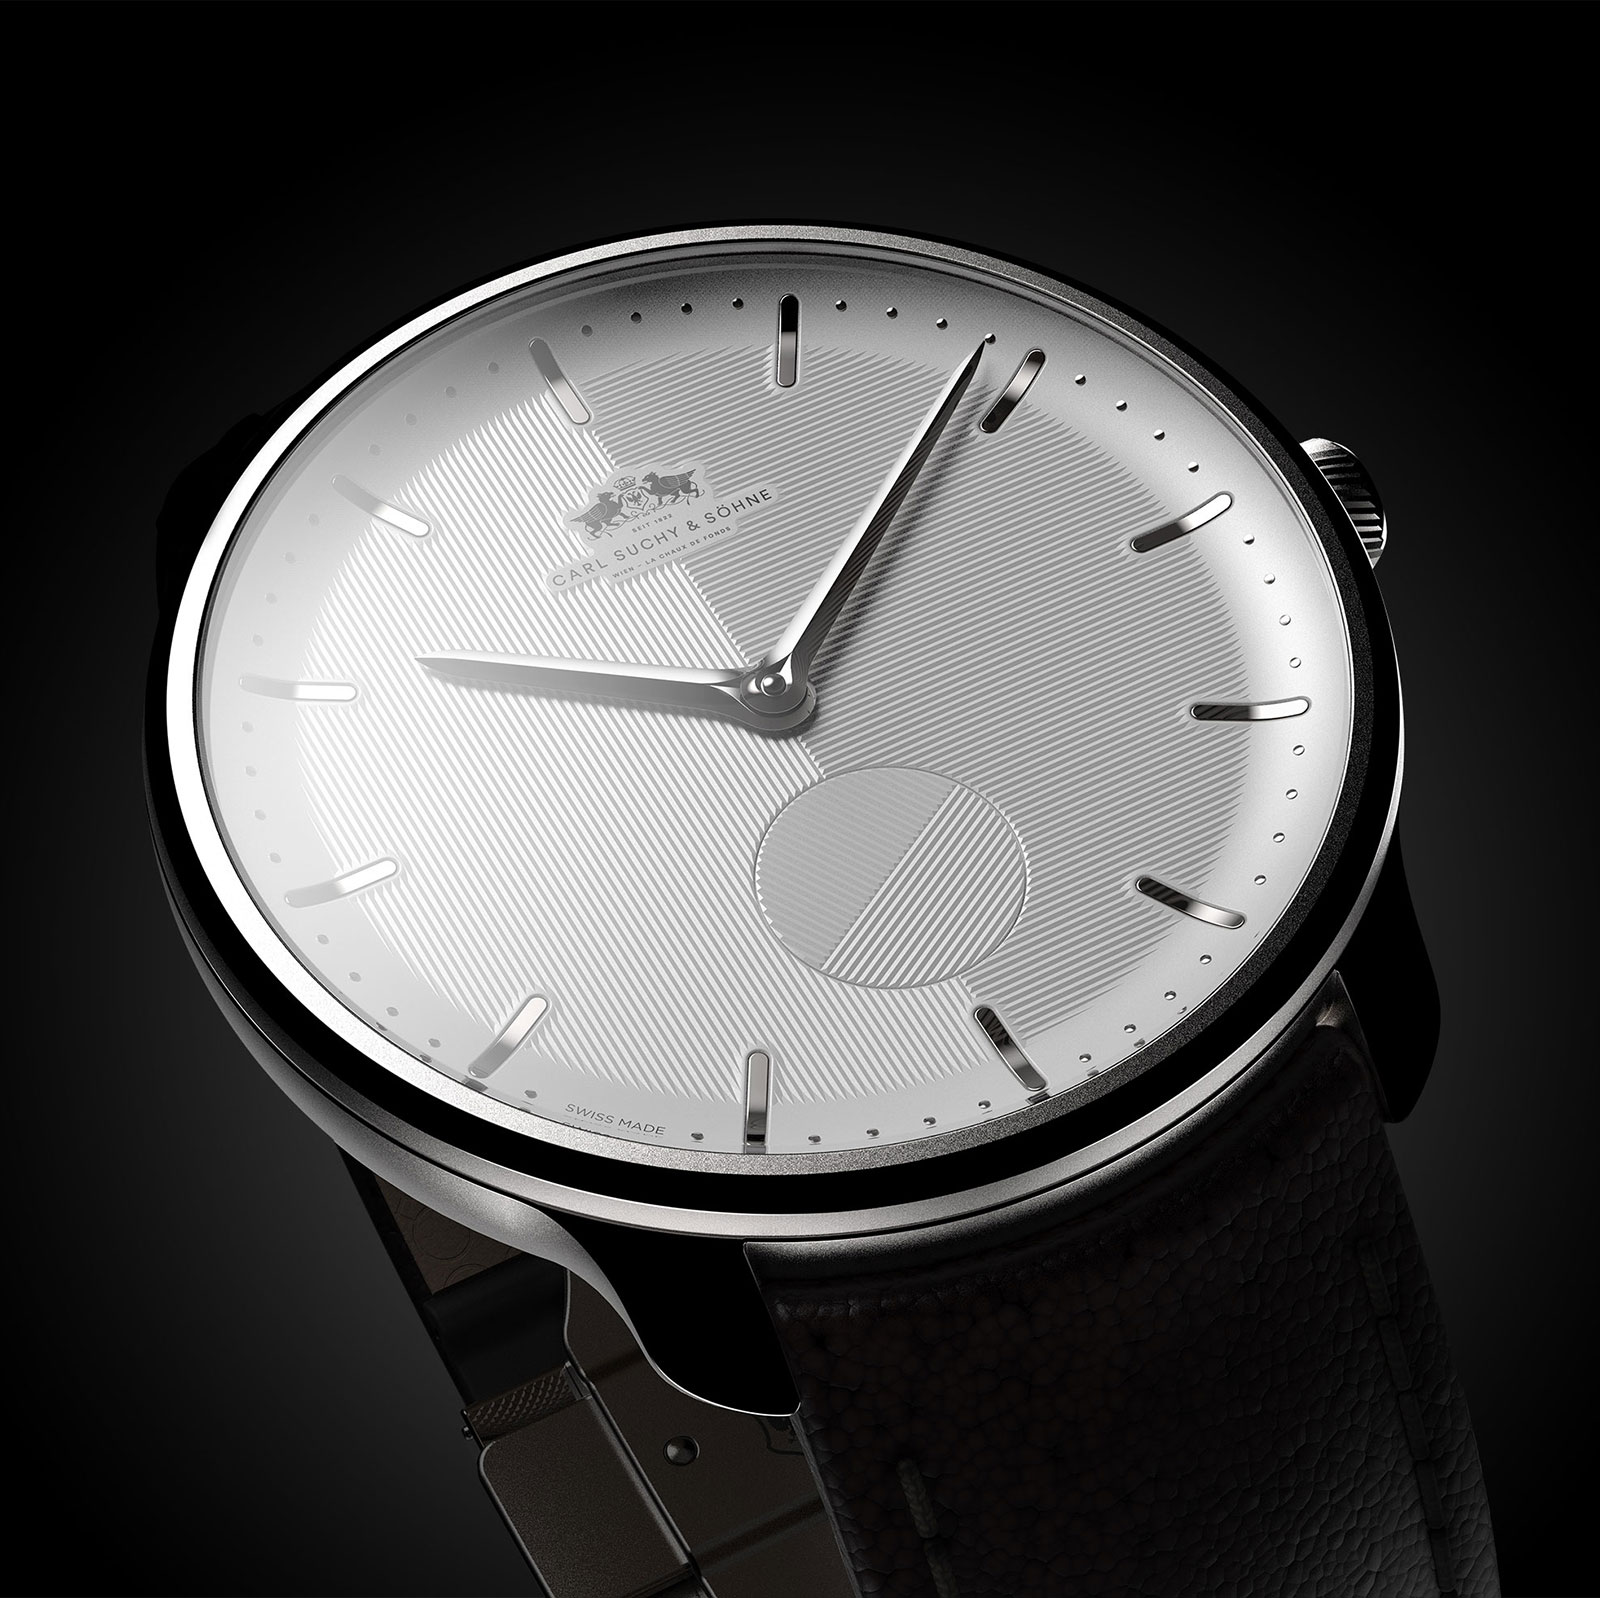 Carl Suchy Waltz No1 watch